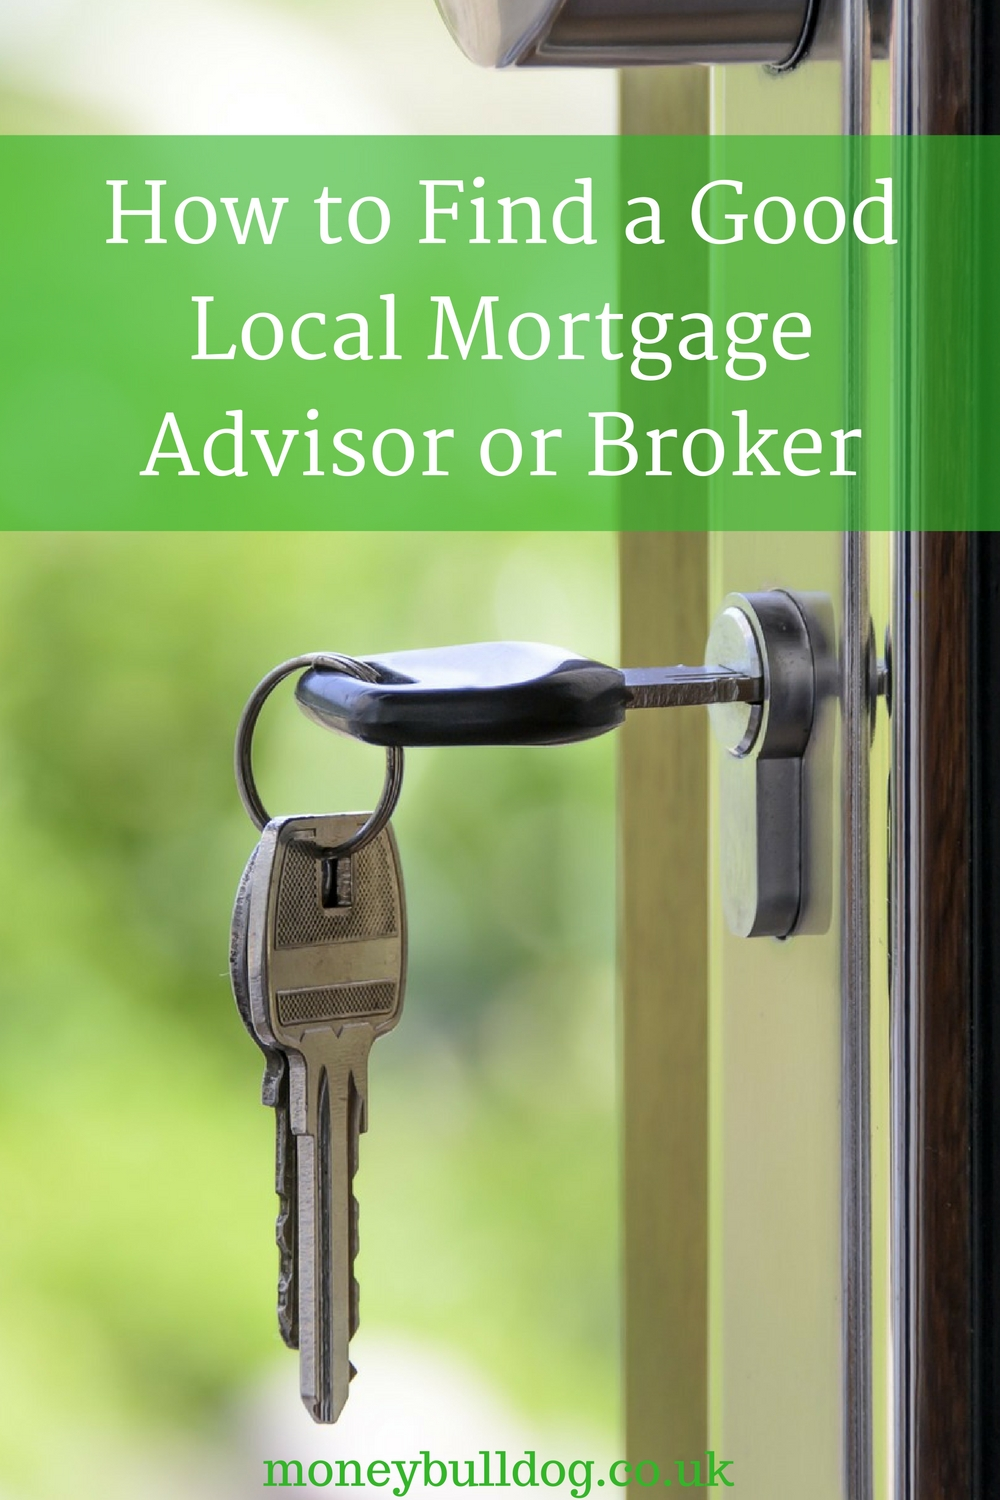 How to Find a Good Local Mortgage Advisor or Broker